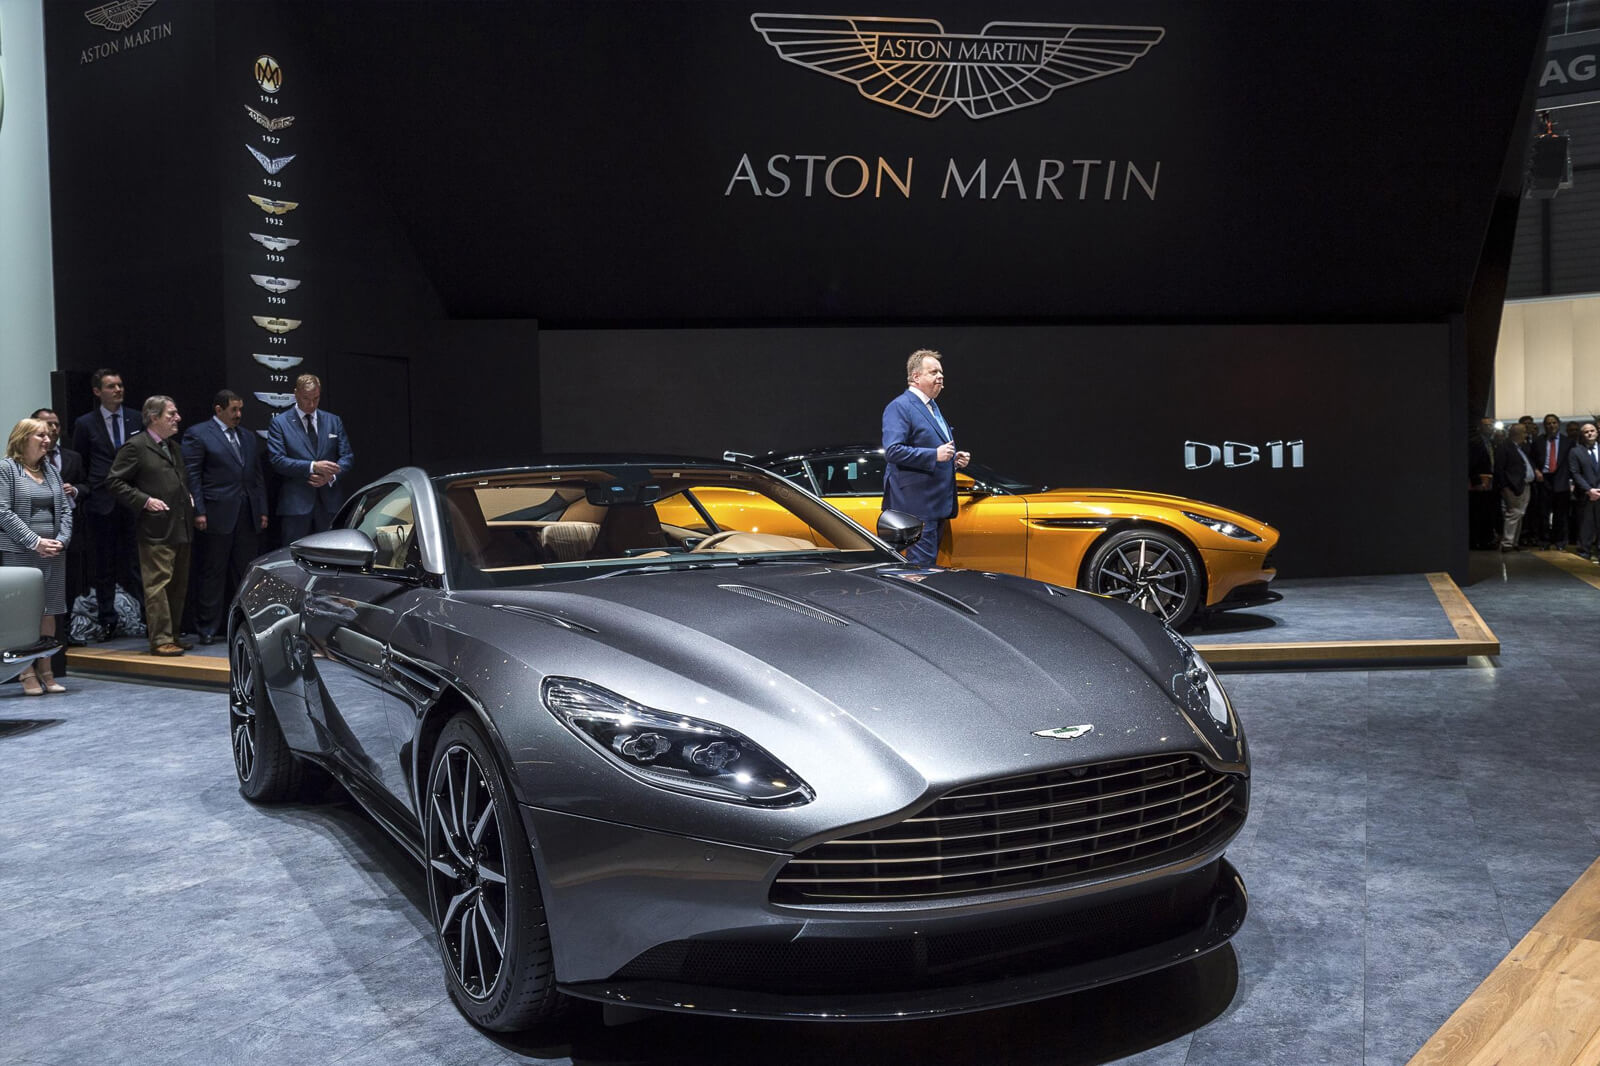 Aston Martin at Goodwood Festival of Speed